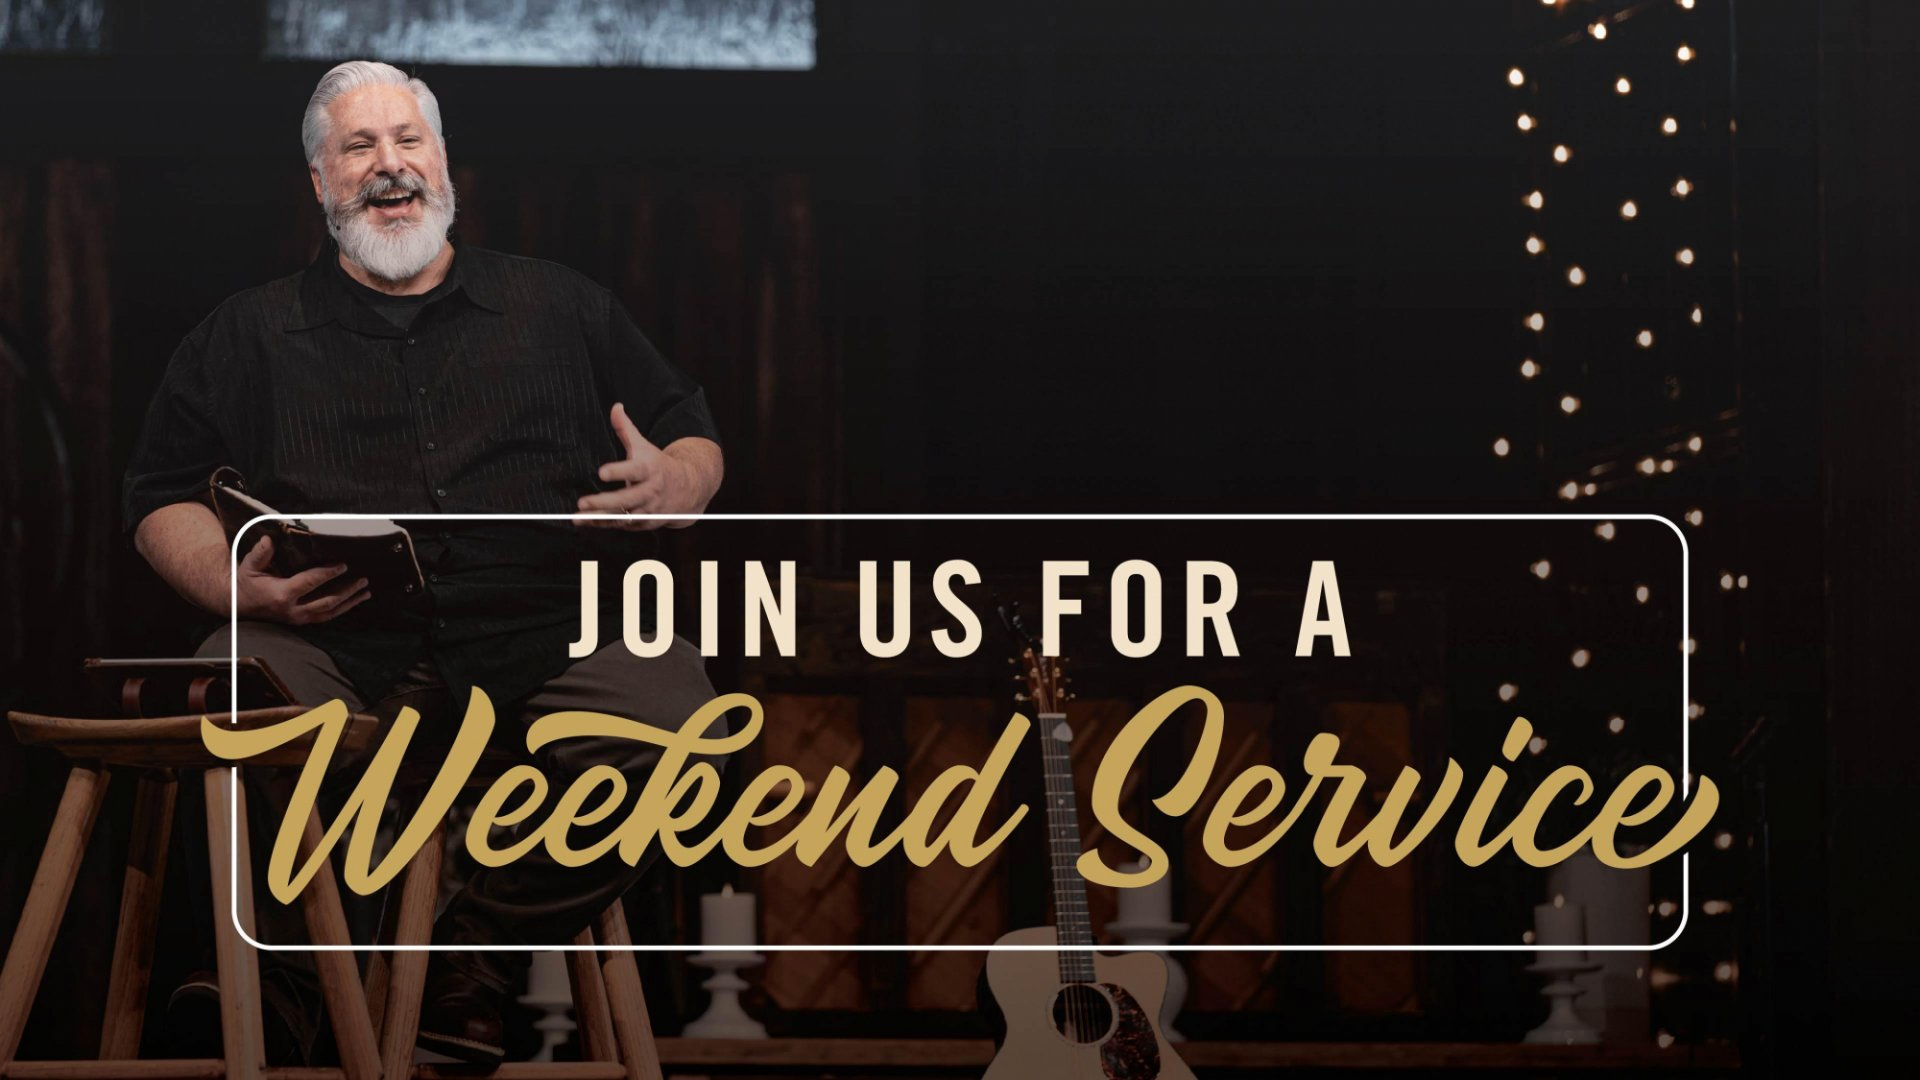 Poster for Weekend Services